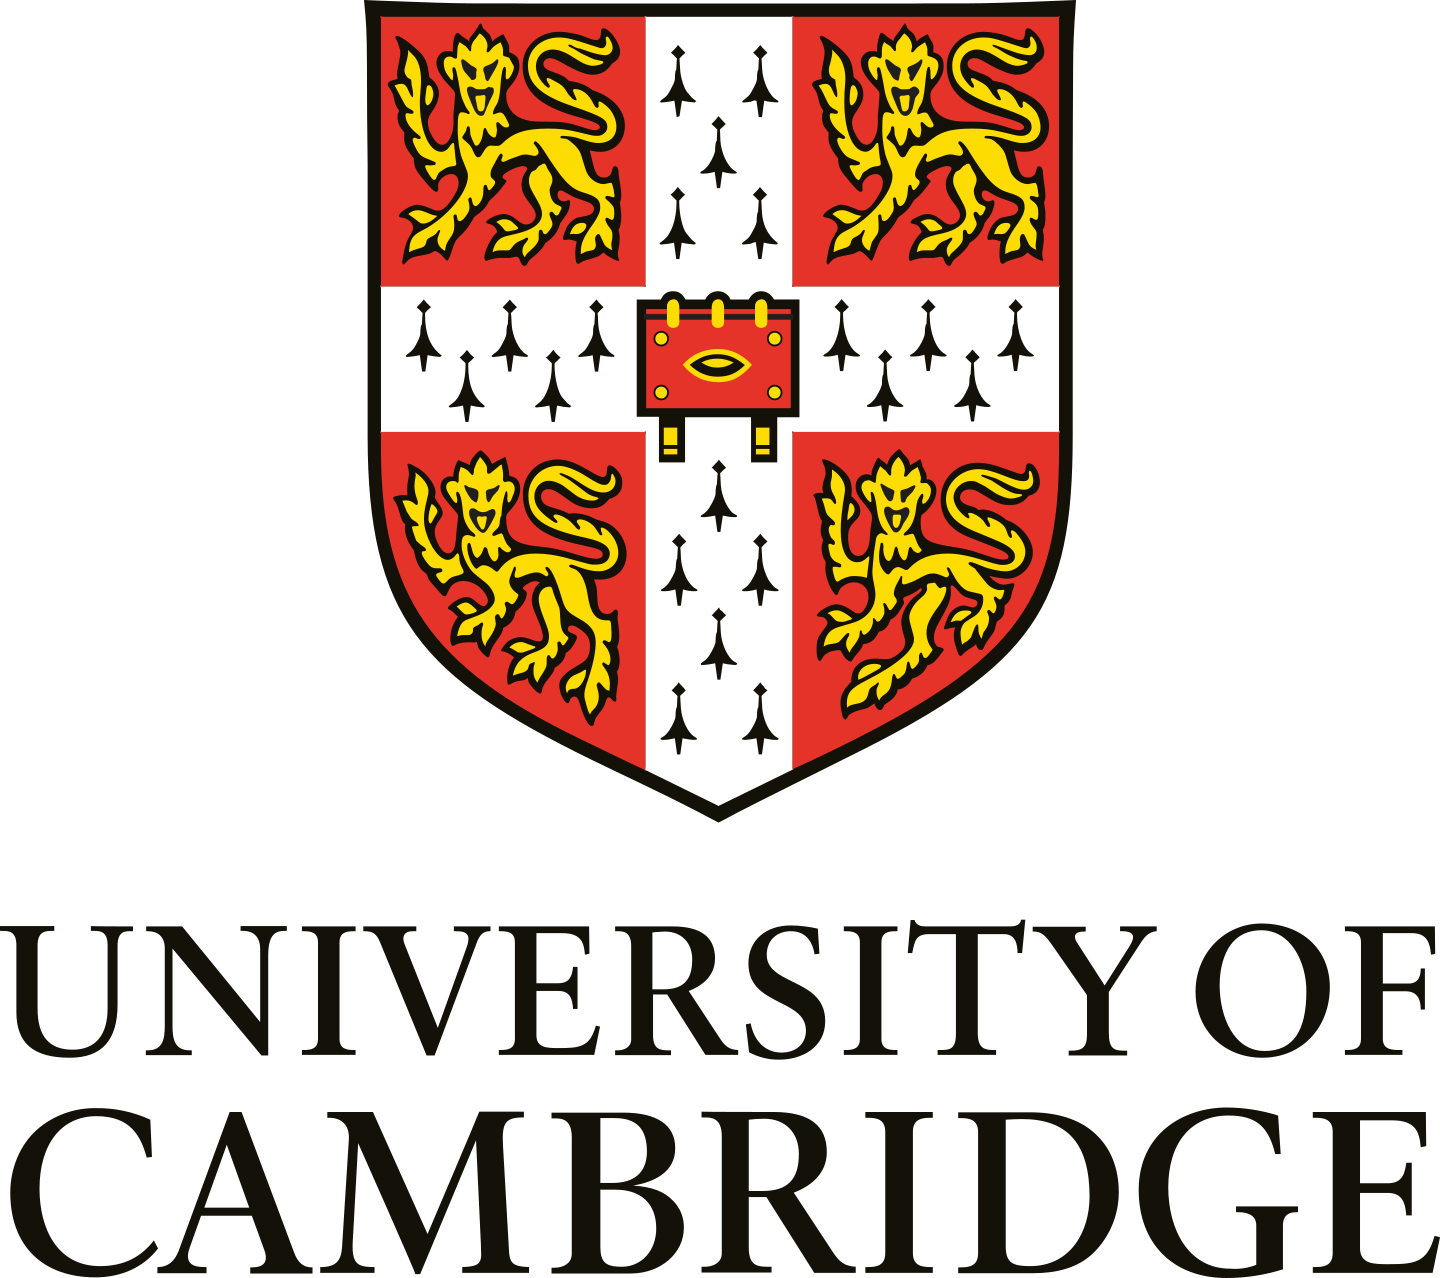 university of cambridge logo 3 - University of Cambridge Logo